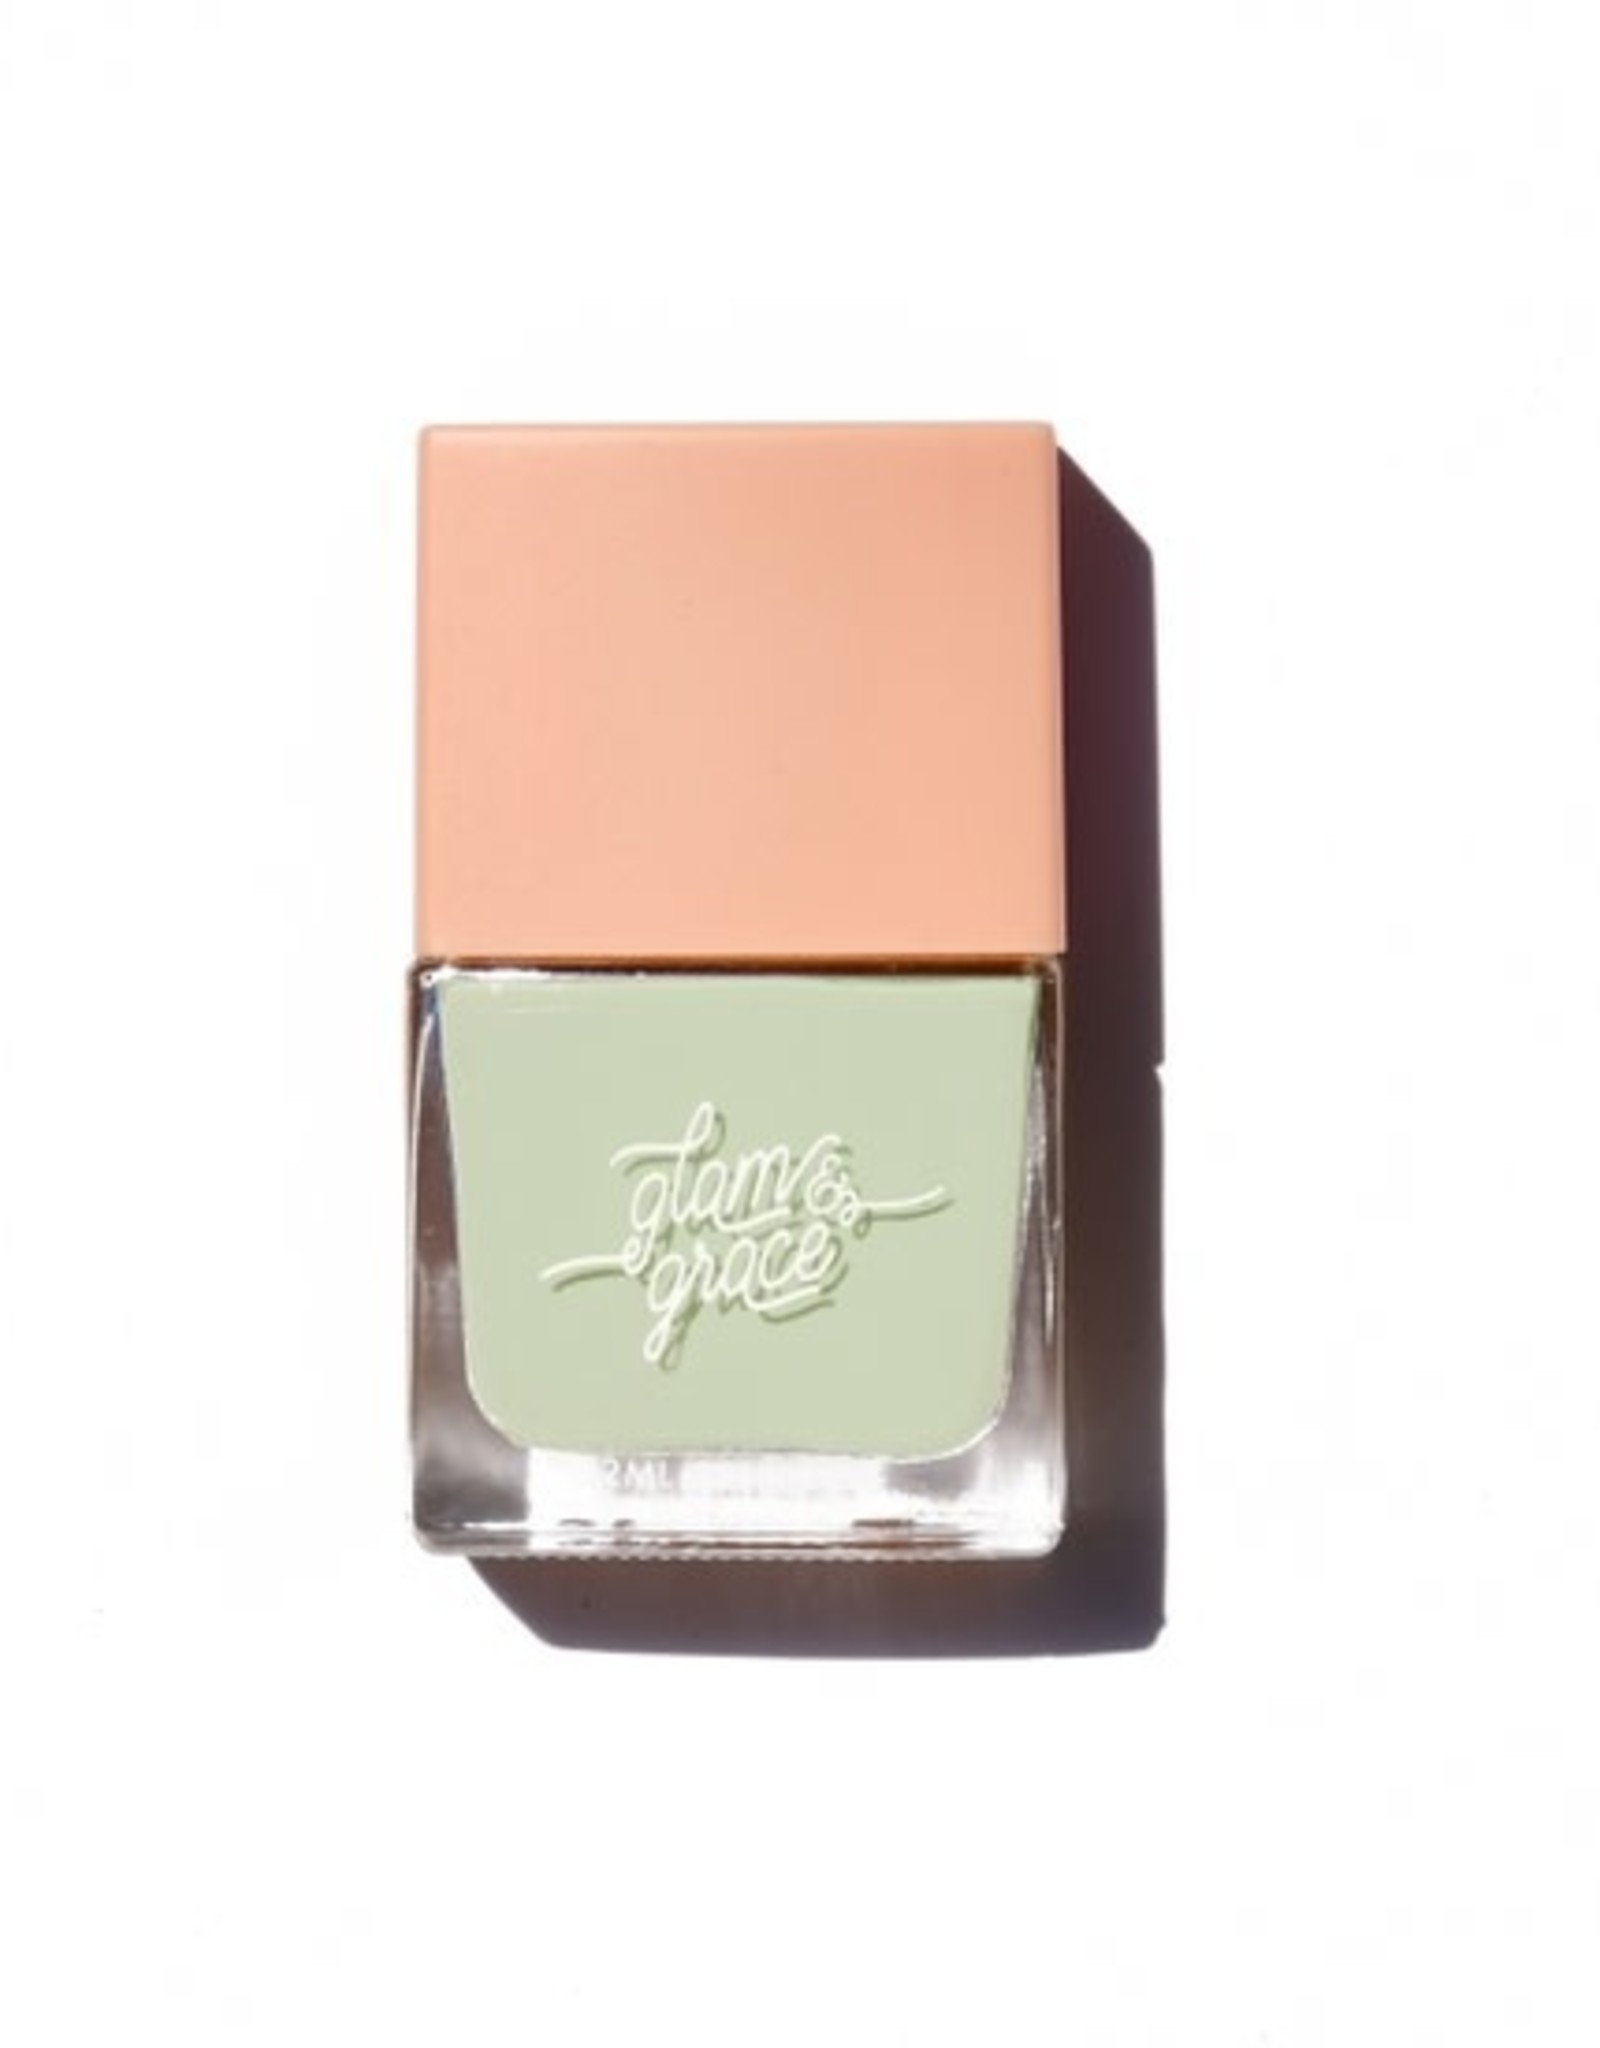 Glam & Grace Glam and Grace Mint